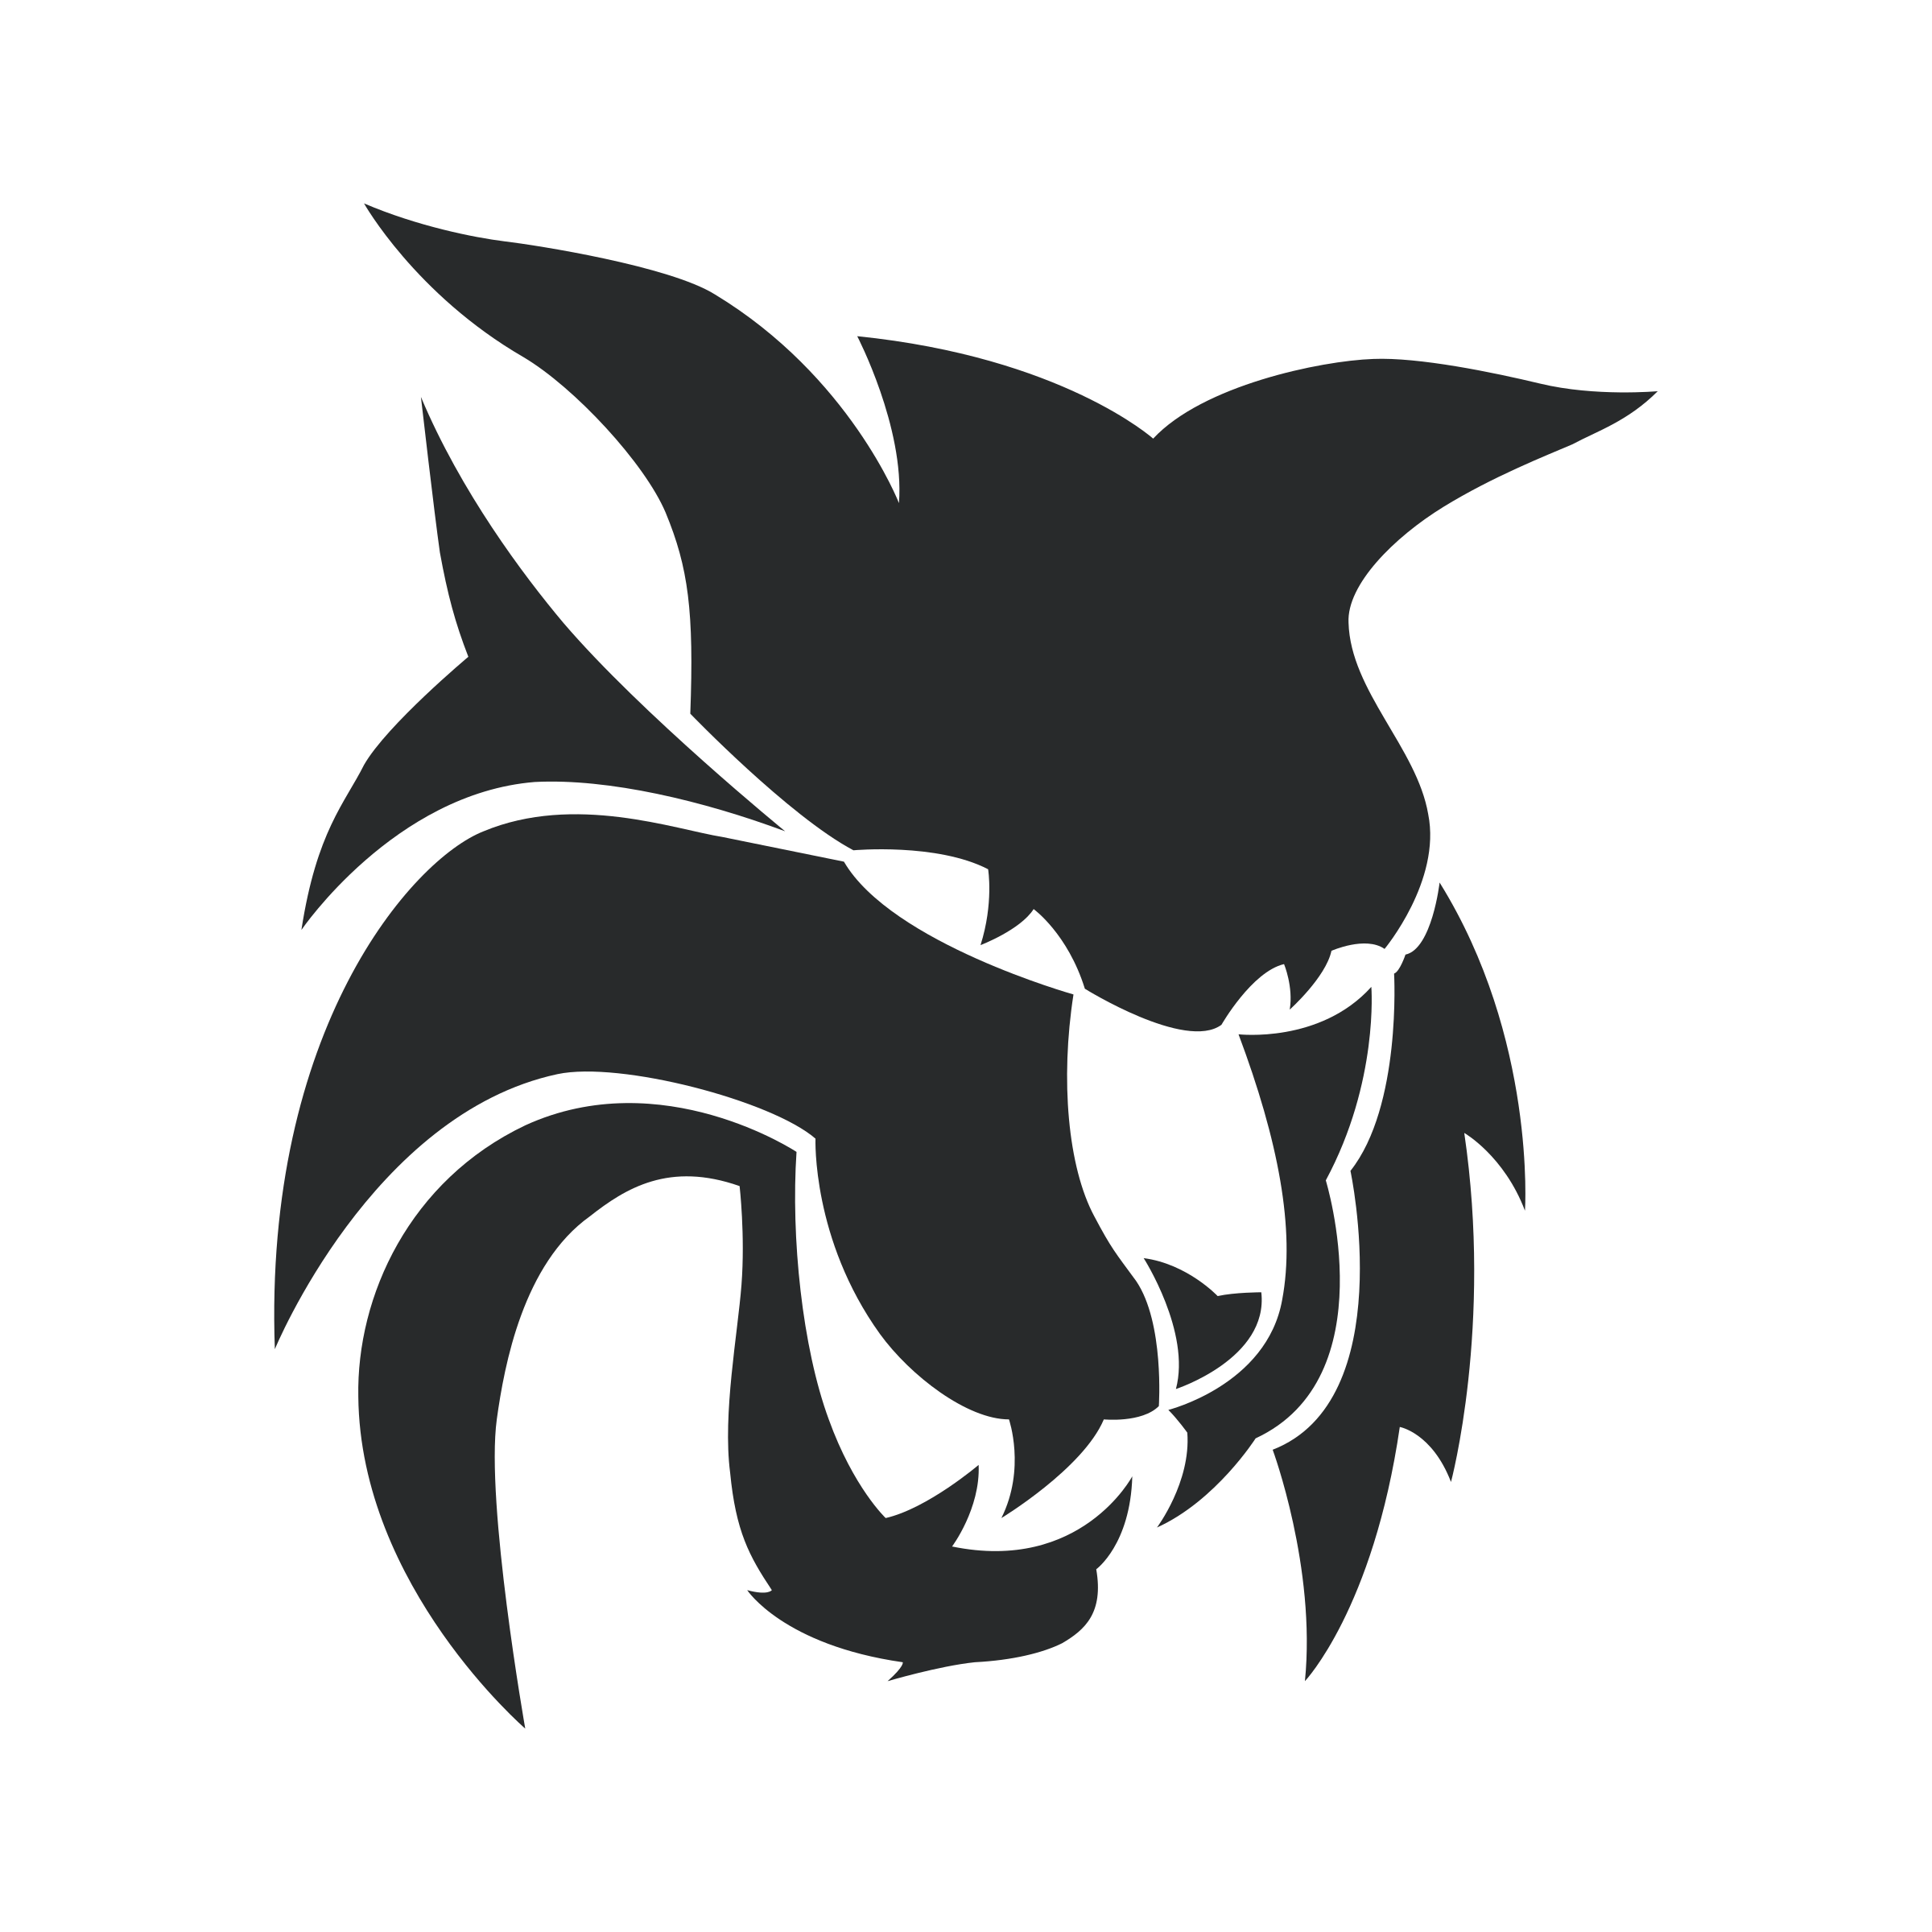 clipart library stock Wildcat vector. Cwu logo png transparent